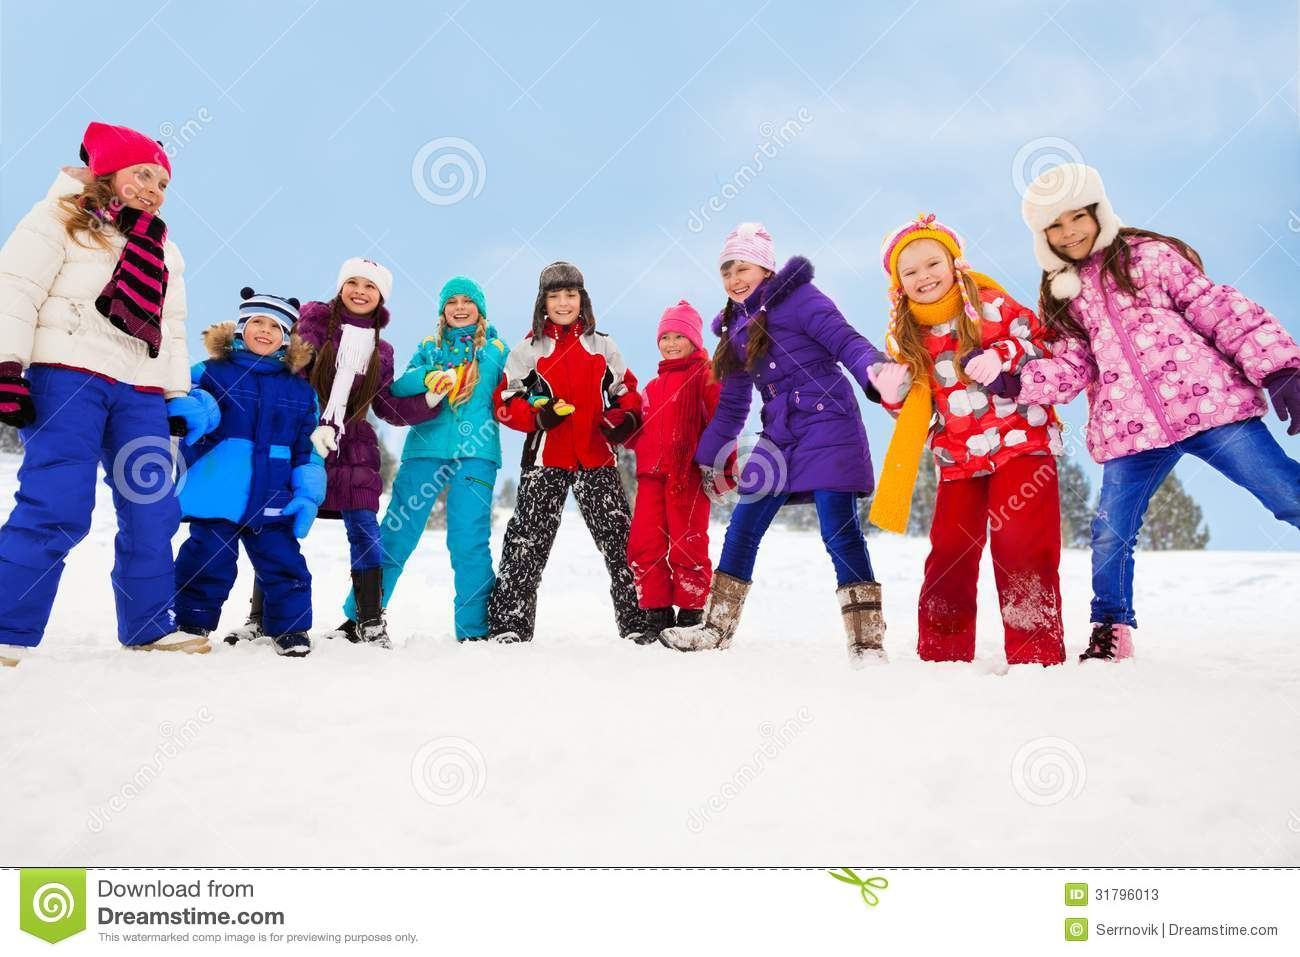 how to walk places with kids in winter